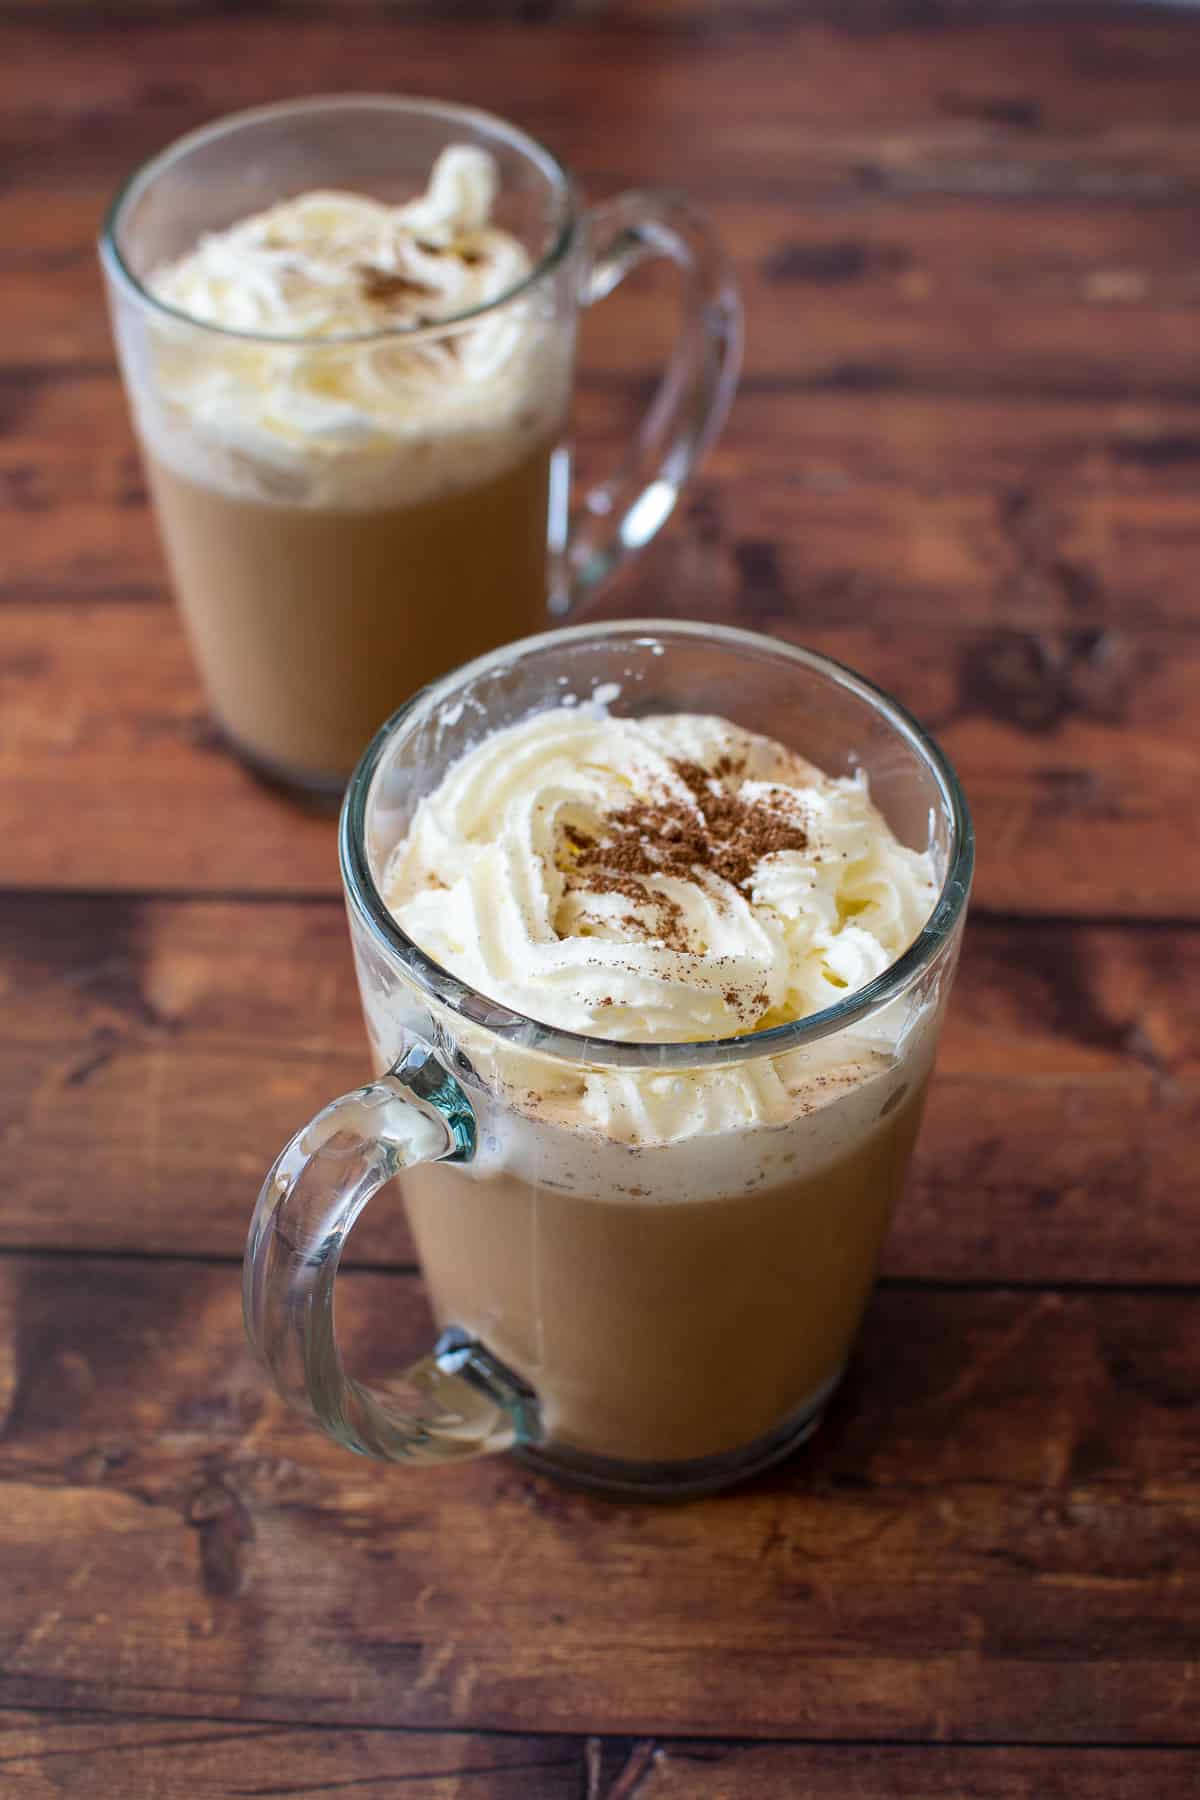 Two cups of latte with whipped cream.